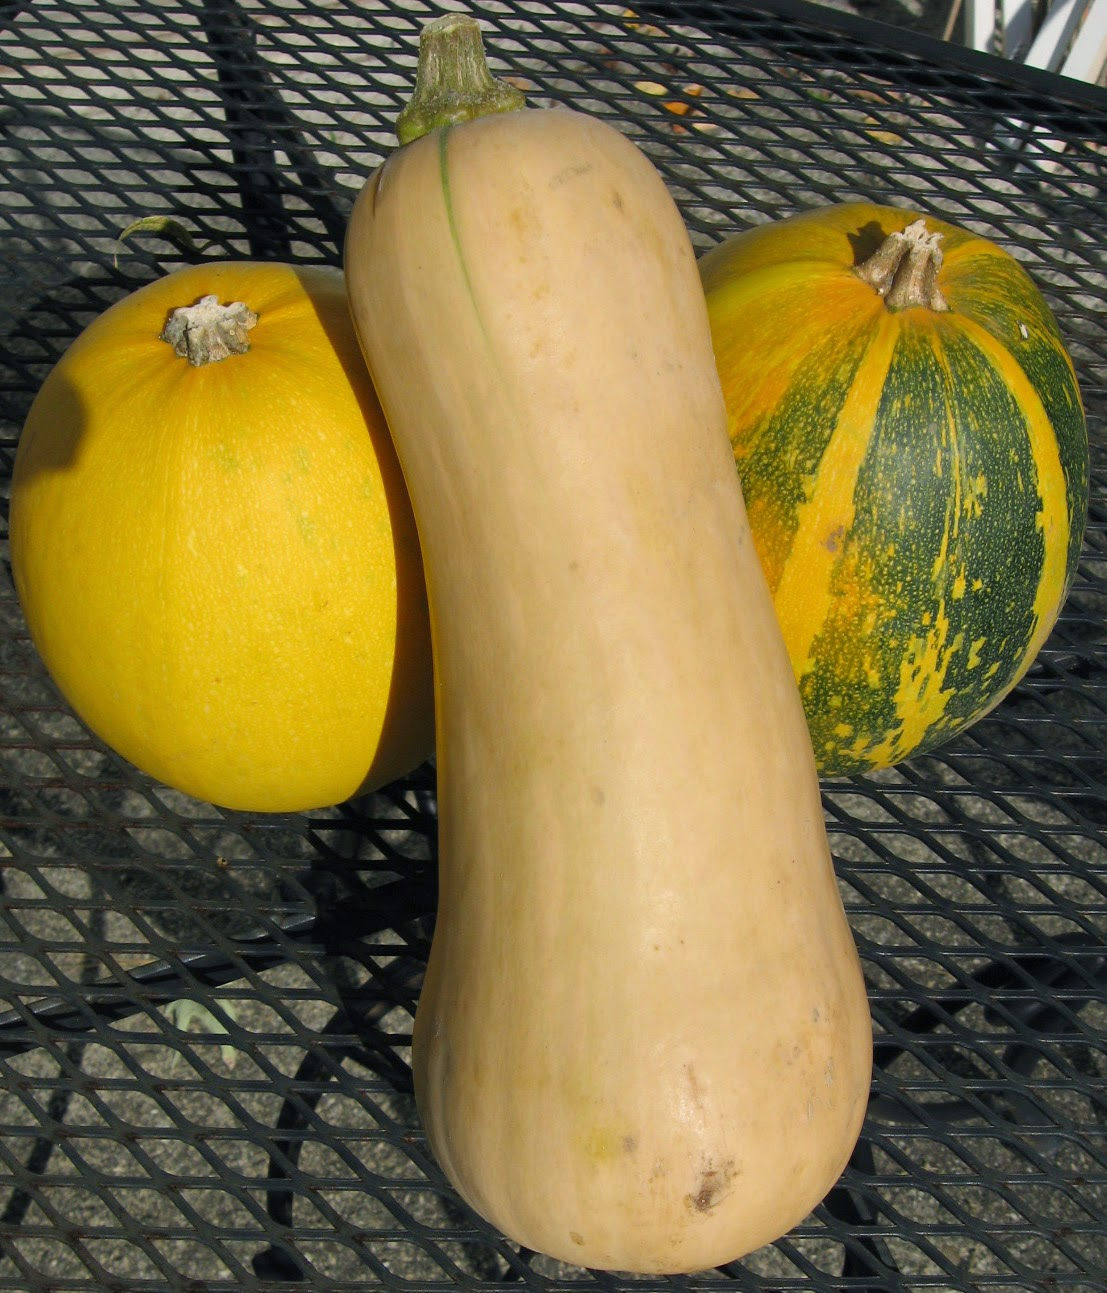 Butternut and Spaghetti Squash